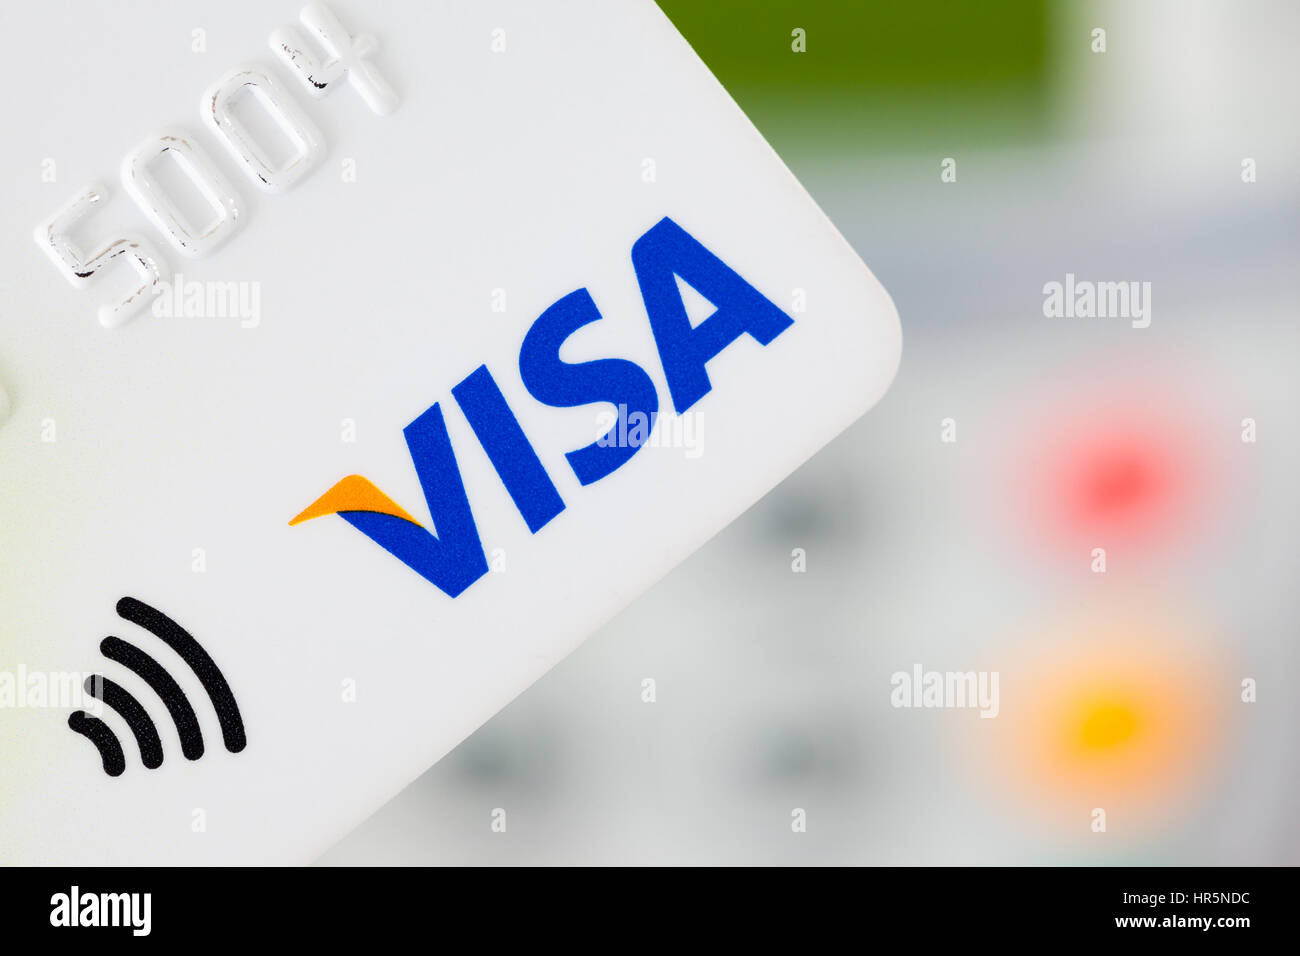 BATH, UK - JANUARY 20, 2014: Close-up of a contactless Visa credit card with a card machine in the background. The - Stock Image